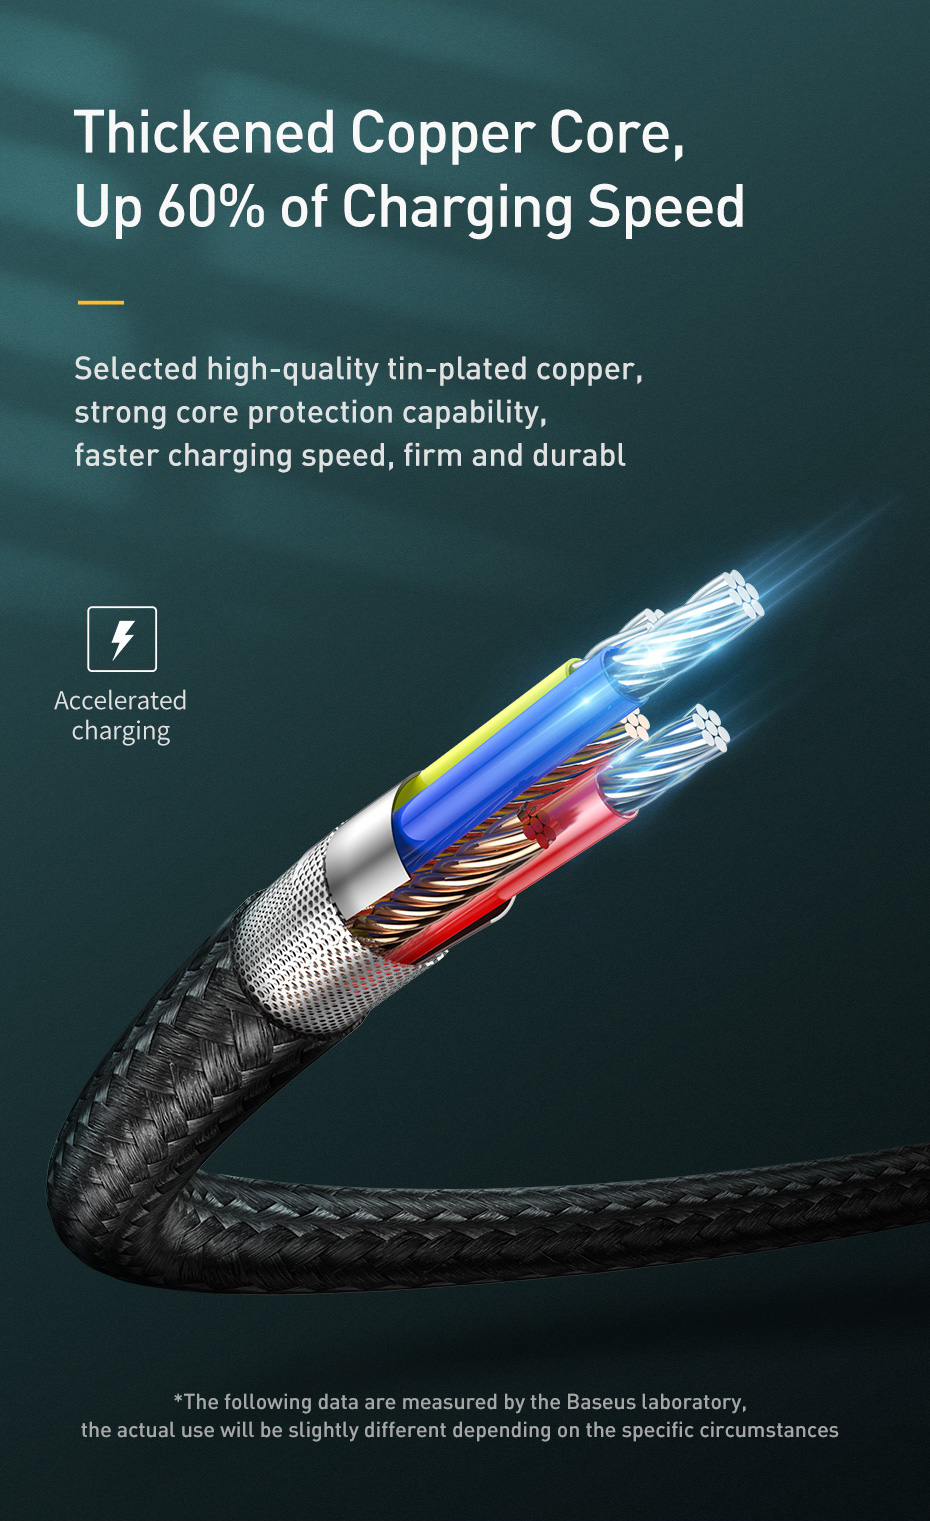 Baseus Zinc Alloy 1.3m 18W PD Quick Charge Cable USB for iPhone Charging Cable USB Typec-C to iP